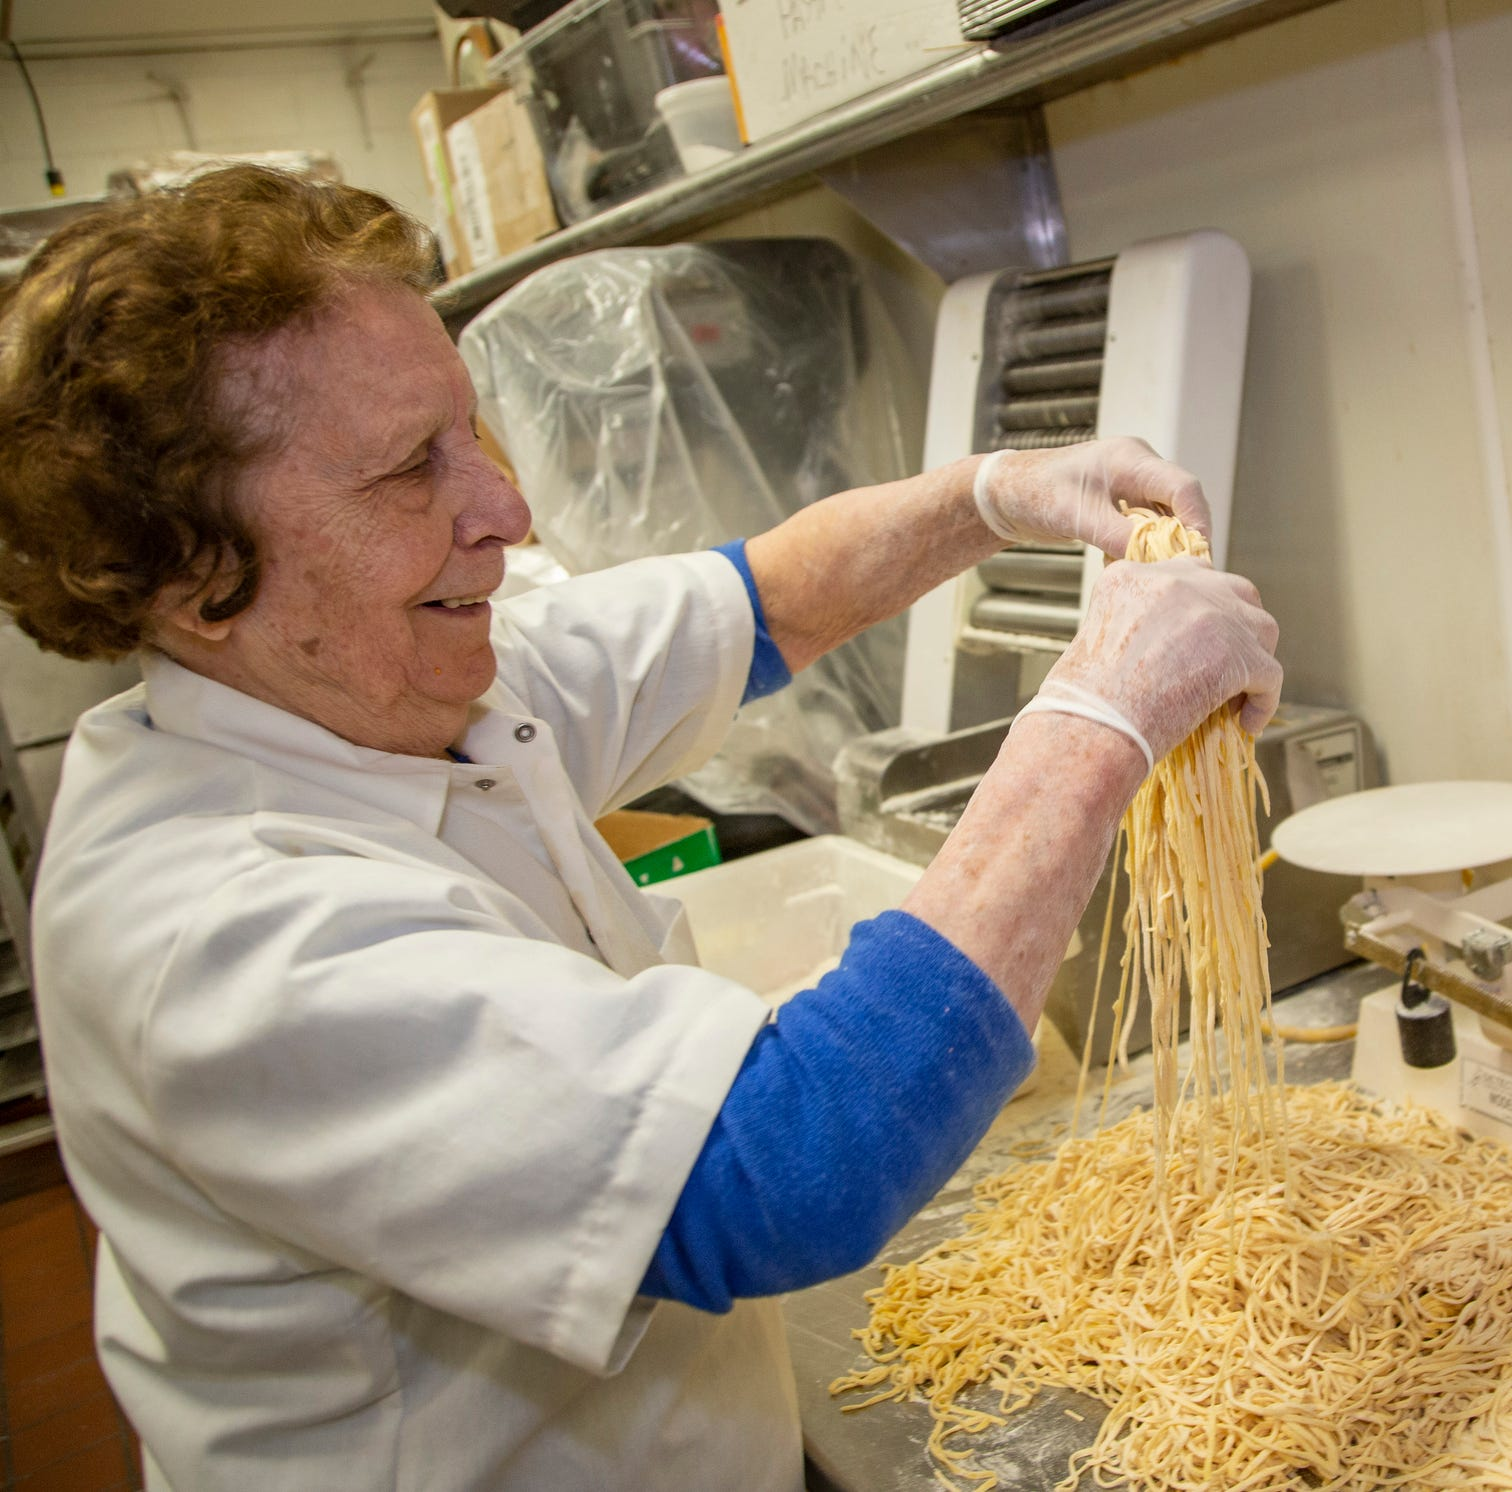 Meet the 3 women who hand make all the pastas for Andiamo restaurants